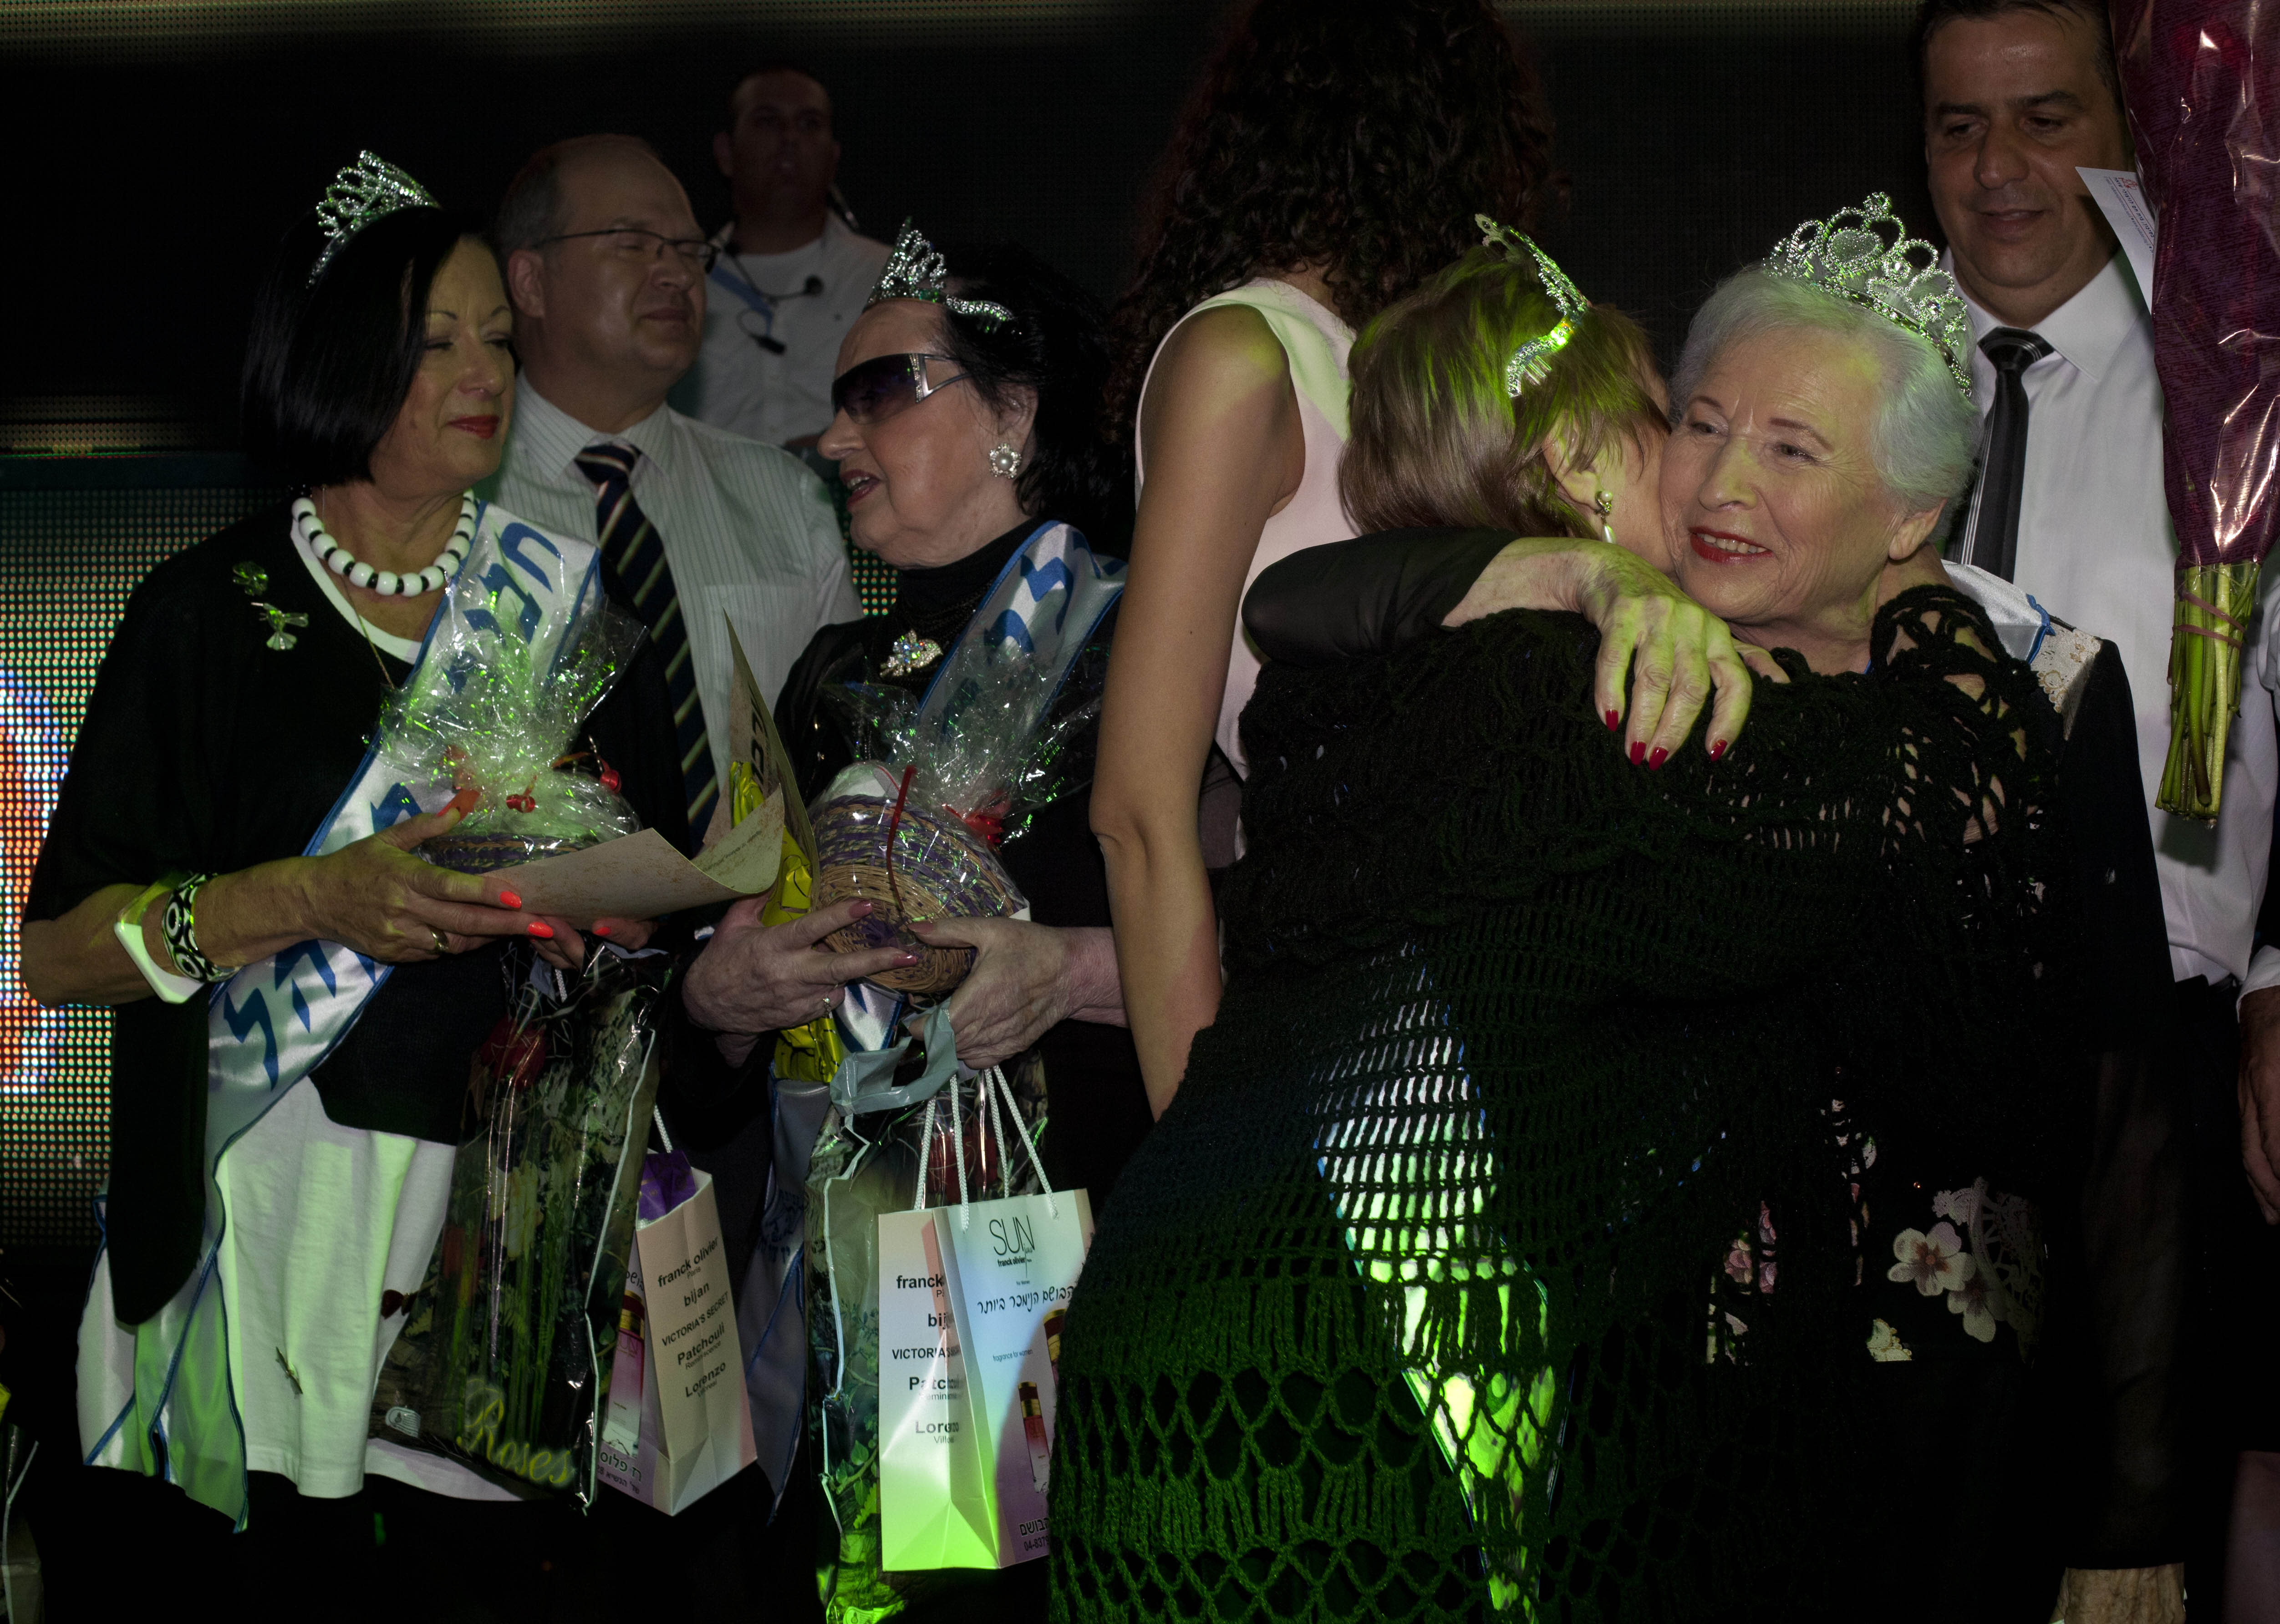 """Hava Hershkovitz, right, a Holocaust survivor and winner of a beauty pageant is congratulated by another participant, in the northern Israeli city of Haifa, Thursday, June 28, 2012. Fourteen women who lived through the horrors of World War II paraded on stage Thursday night in an unusual pageant, vying for the honor of being Israel's first """"Miss Holocaust Survivor."""" (AP Photo/Sebastian Scheiner)"""